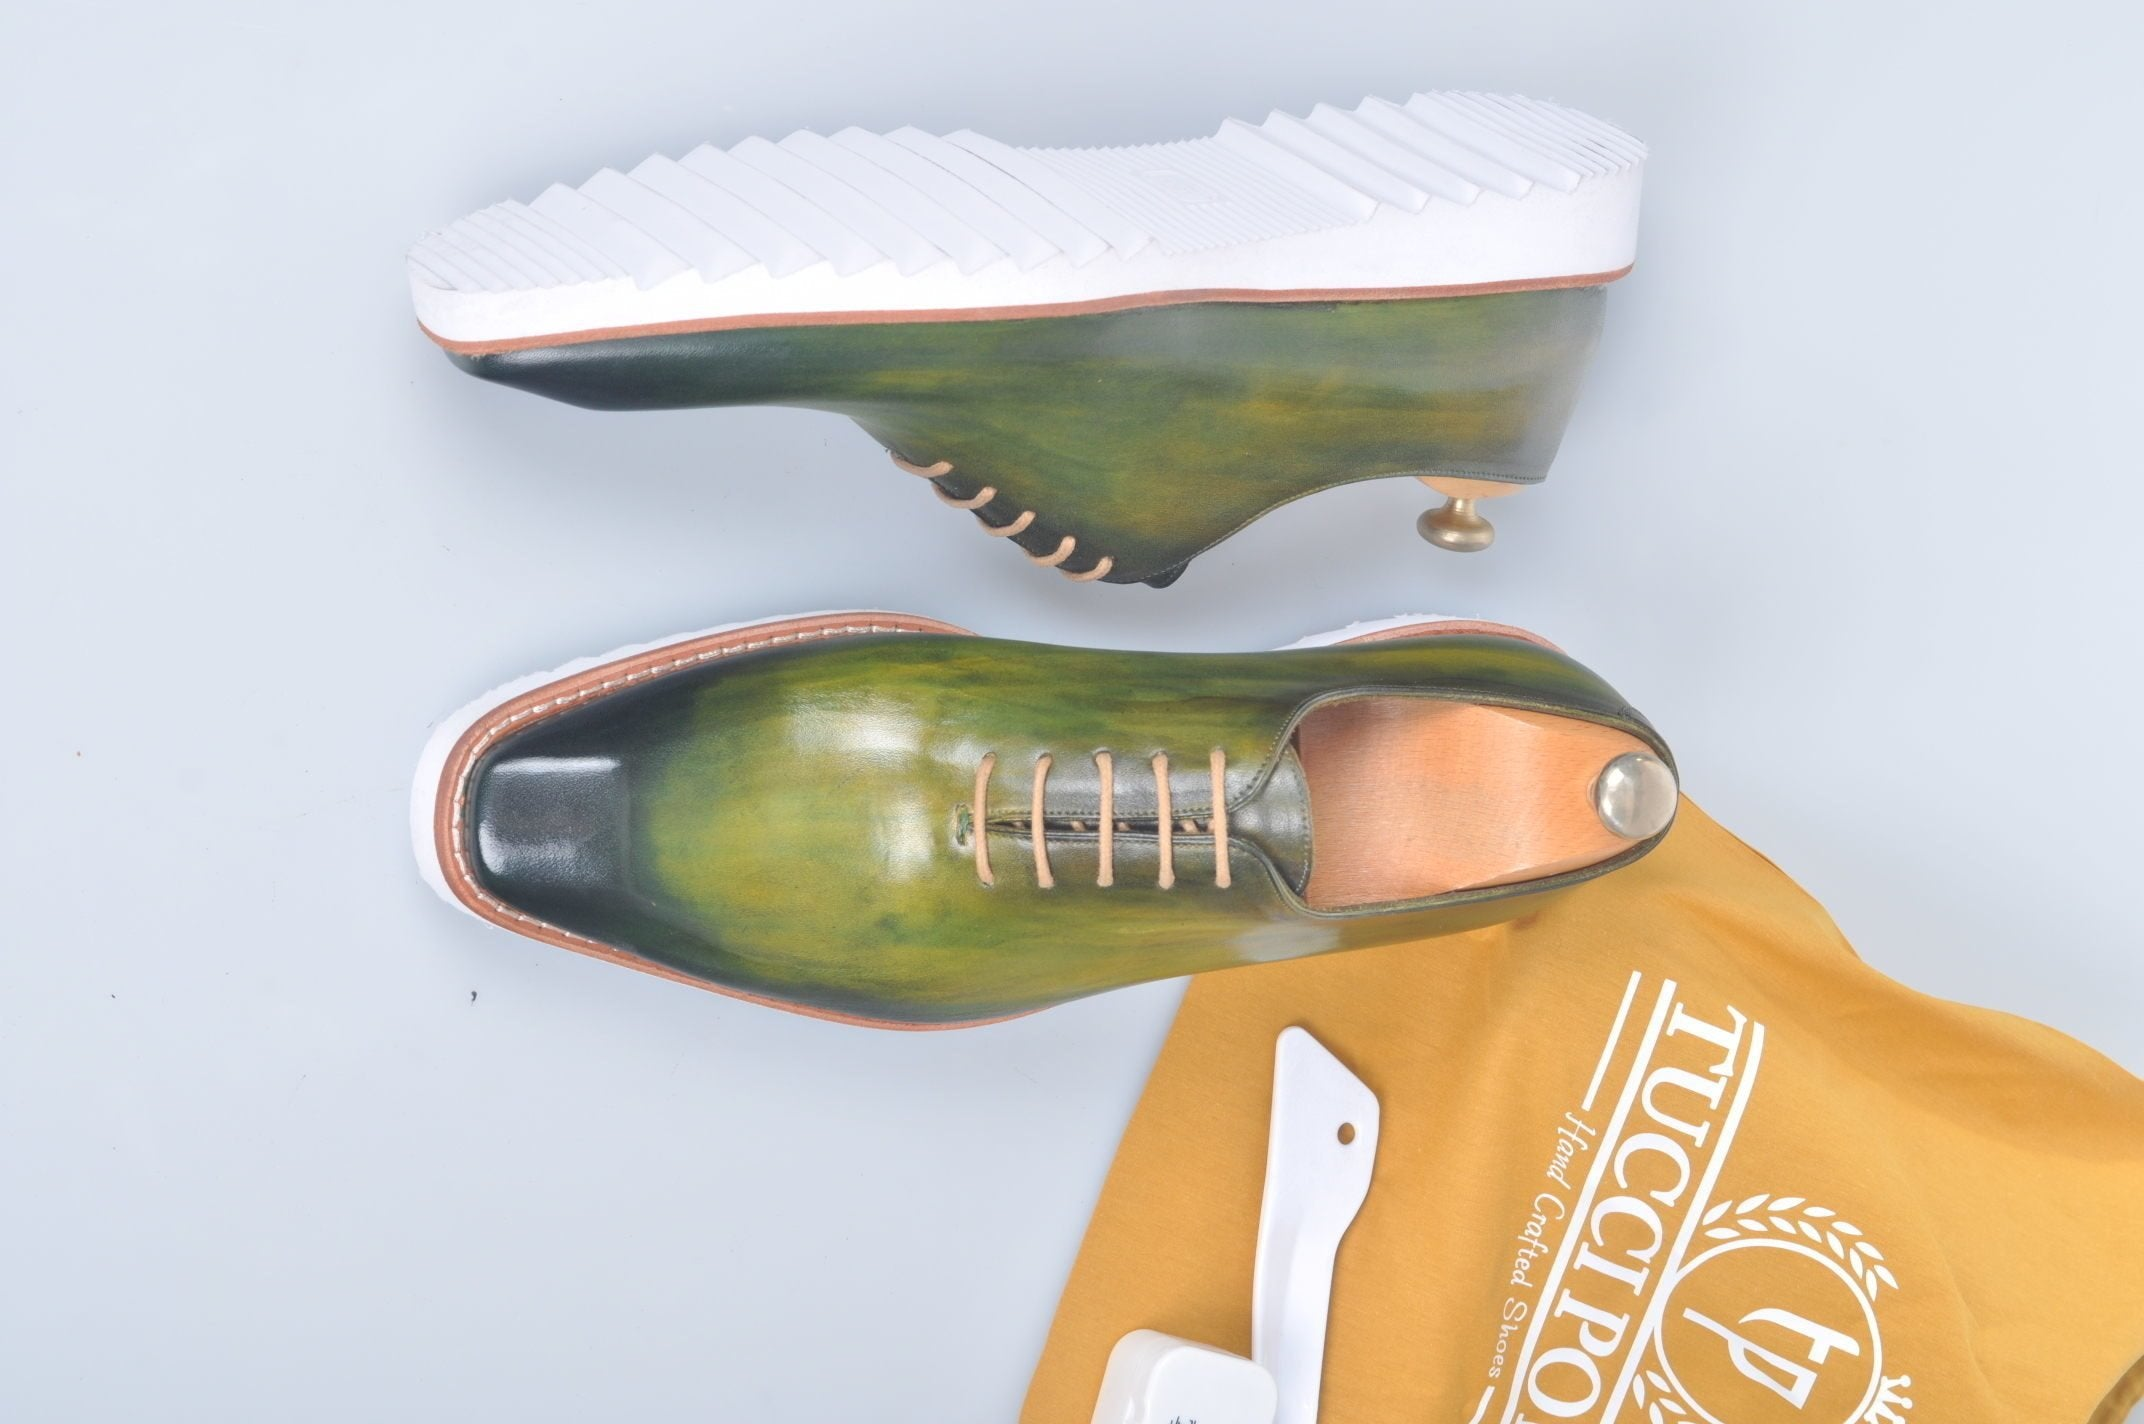 TucciPolo Limited Edition Sporty Handmade Luxury Greenish Mens Italian Leather Oxford Shoes With Eva Sole